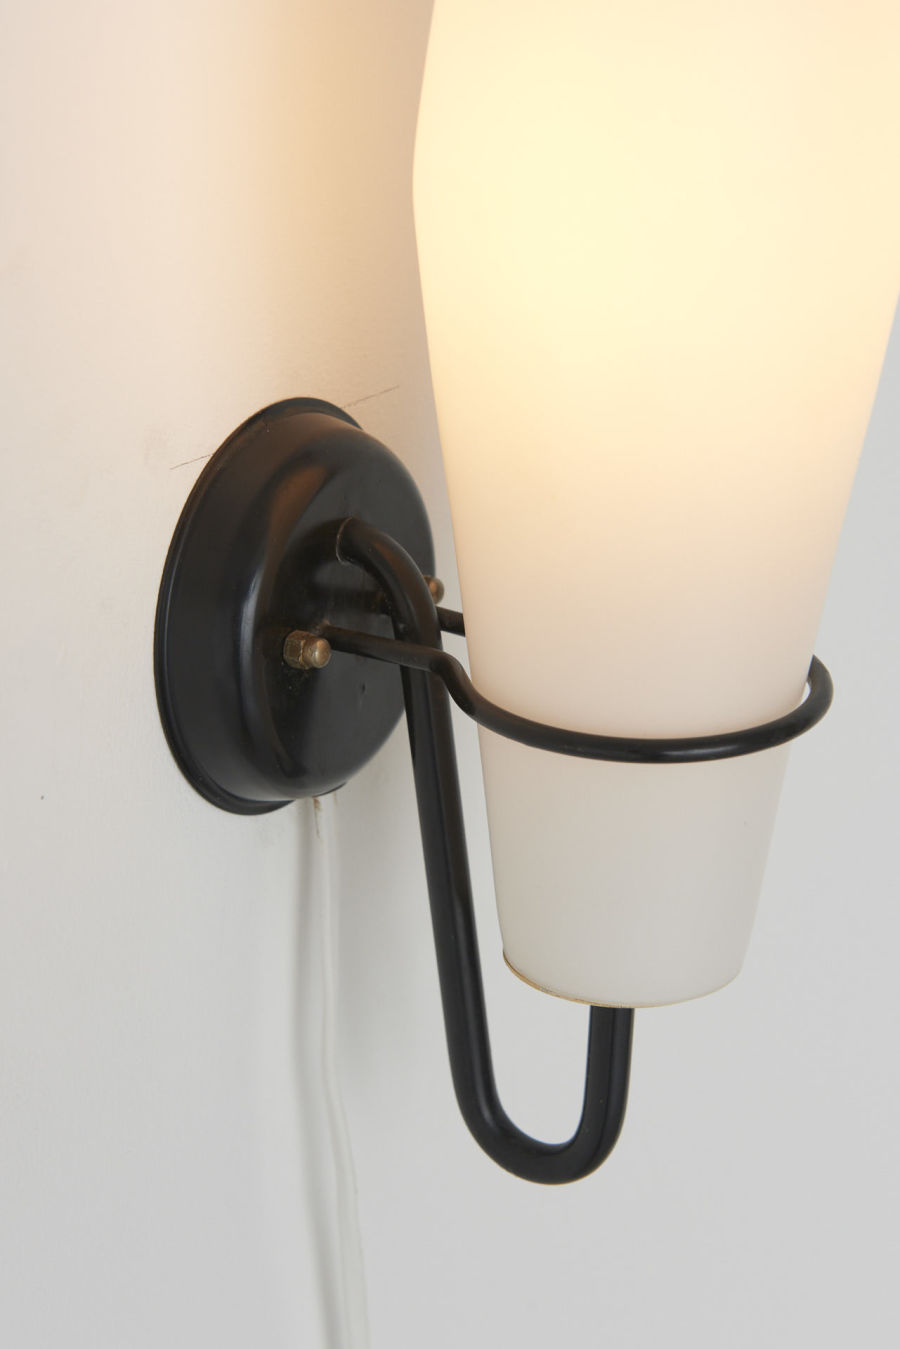 modestfurniture-vintage-2666-raak-wall-lamps-milk-glass-metal-bracket05